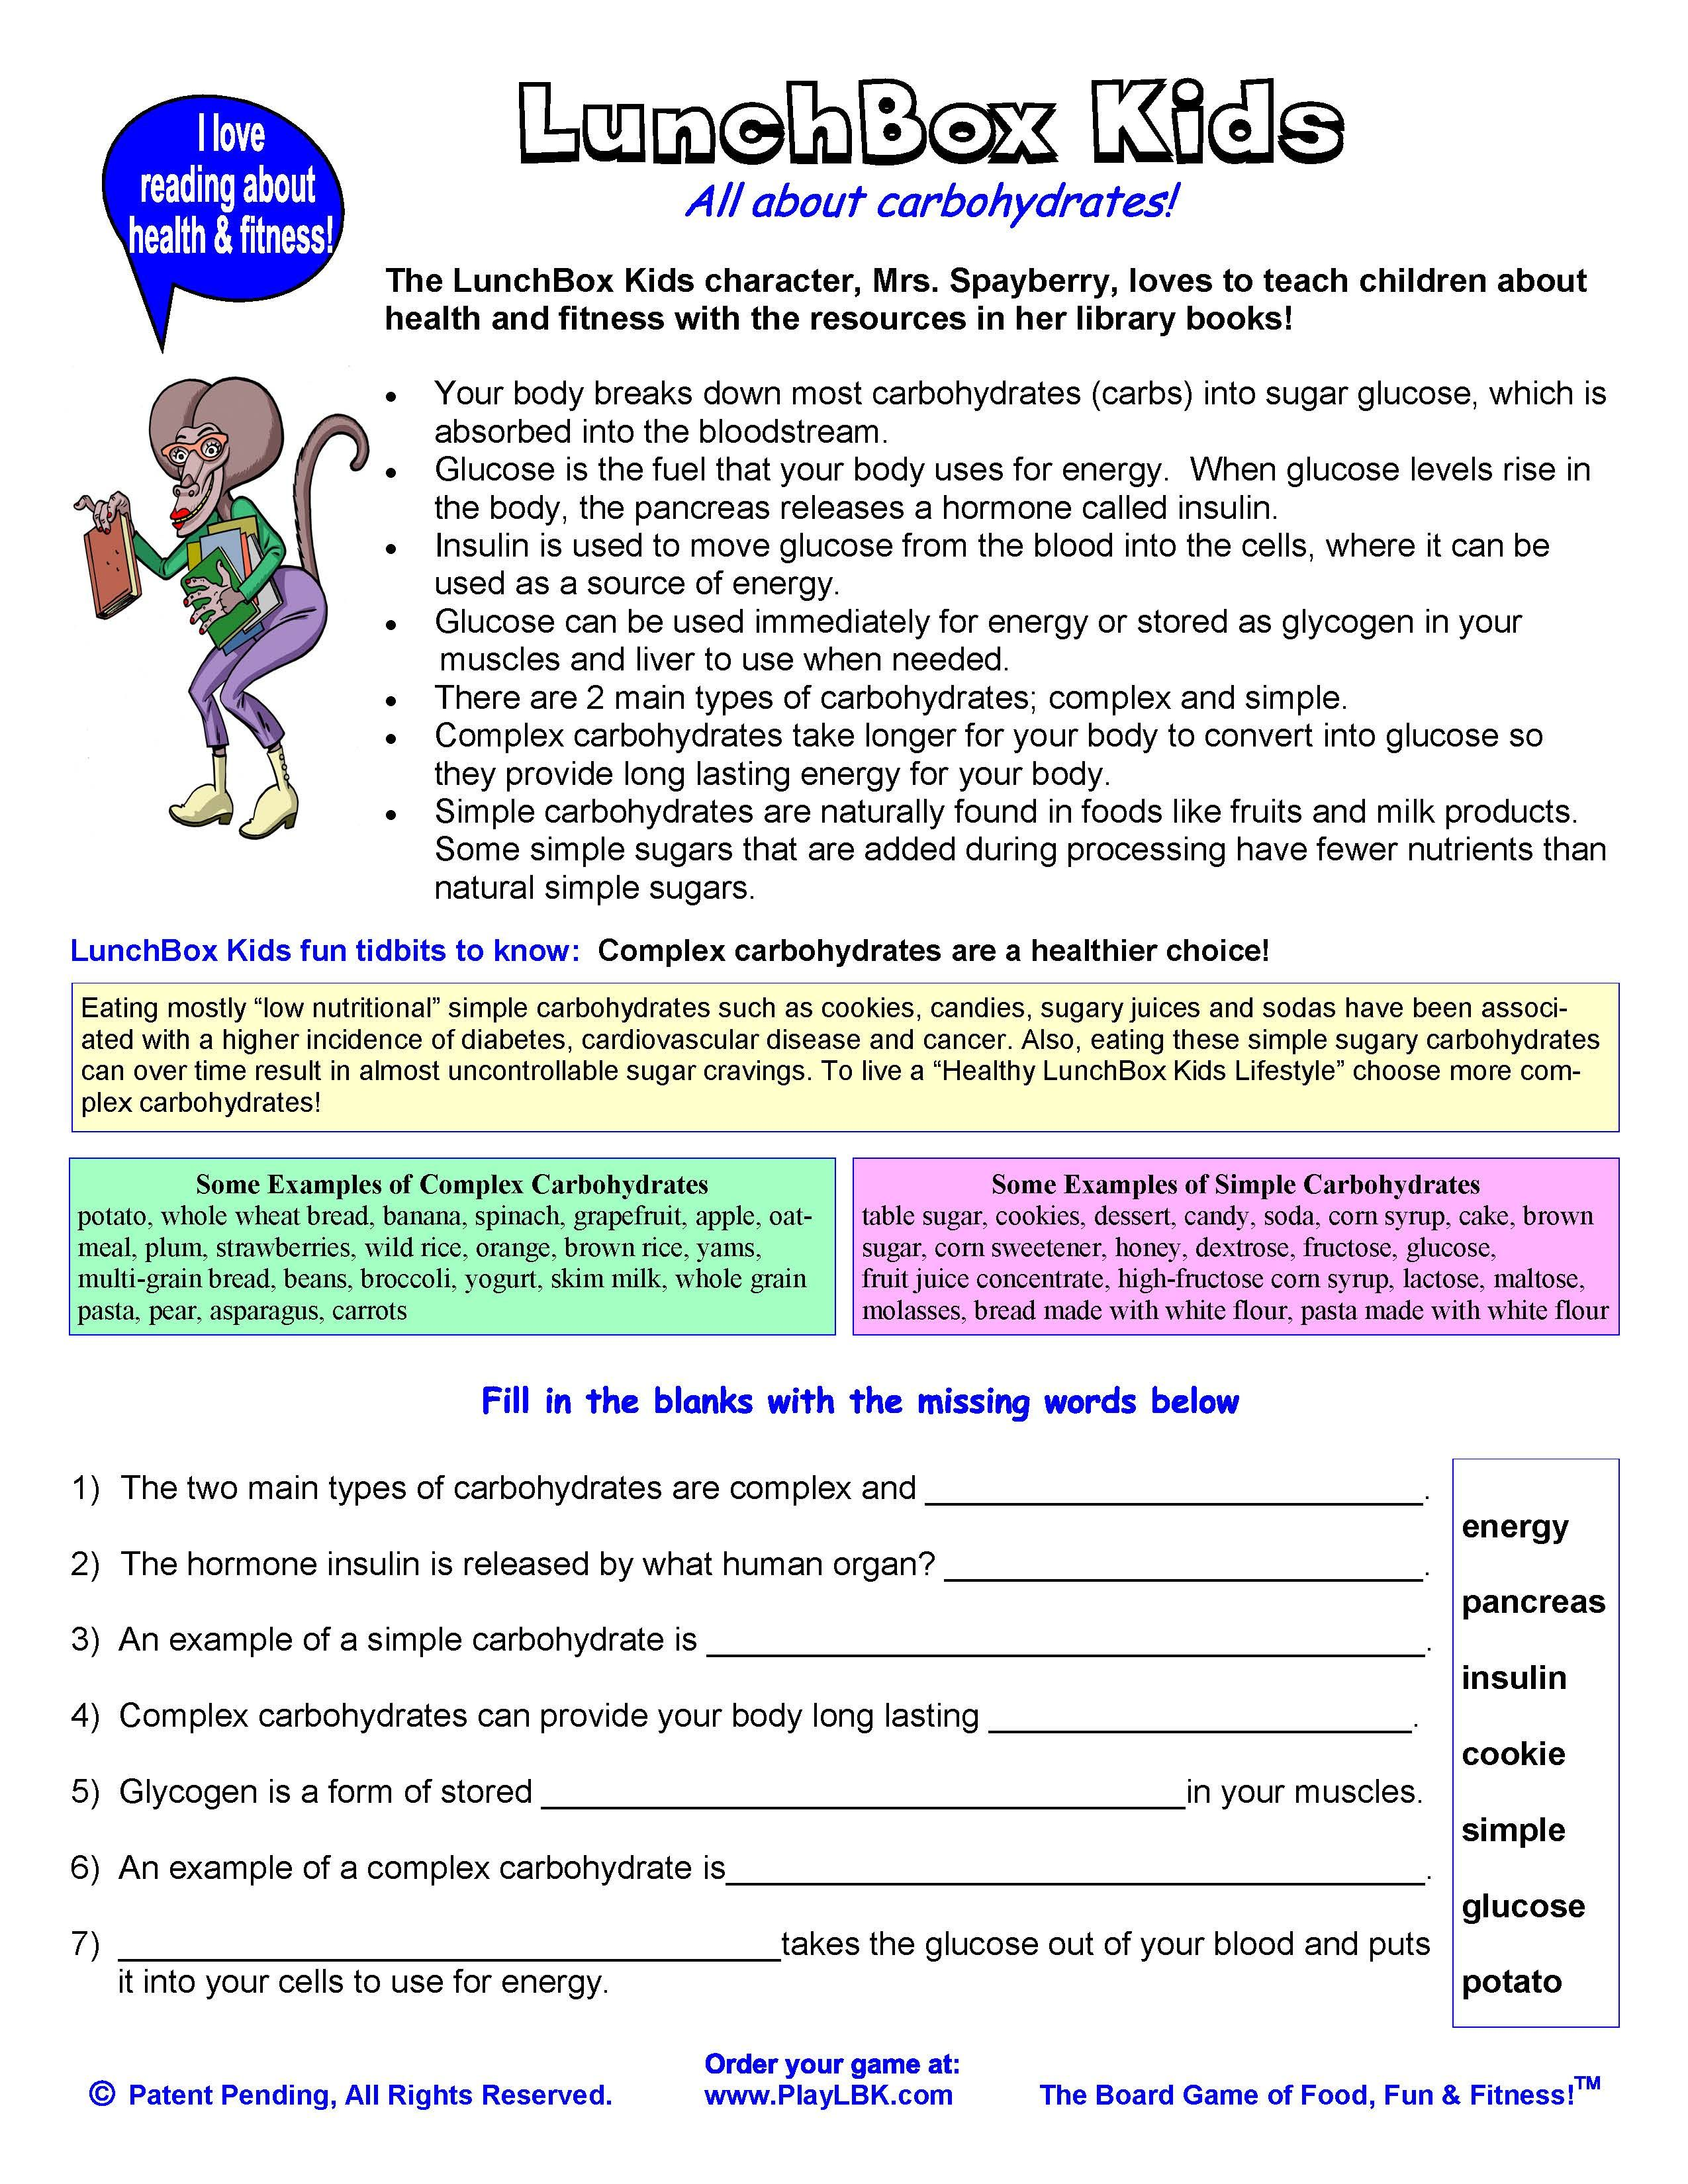 All About Carbohydrates Resource Worksheet